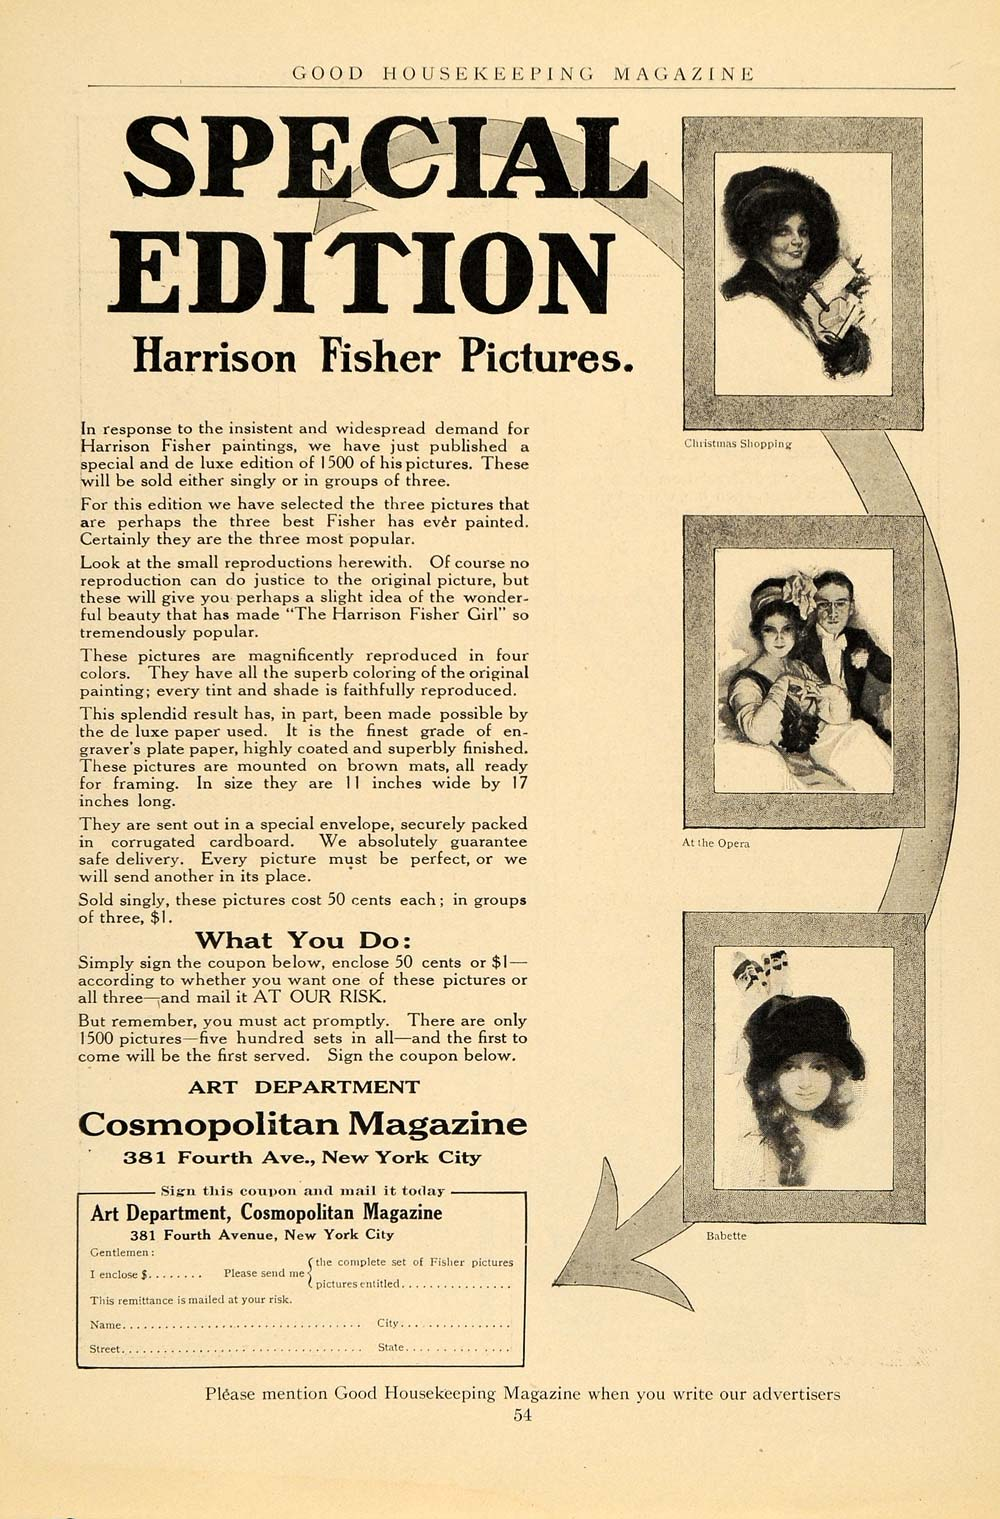 1912 Ad Cosmopolitan Magazine Harrison Fisher Pics - ORIGINAL ADVERTISING GH2